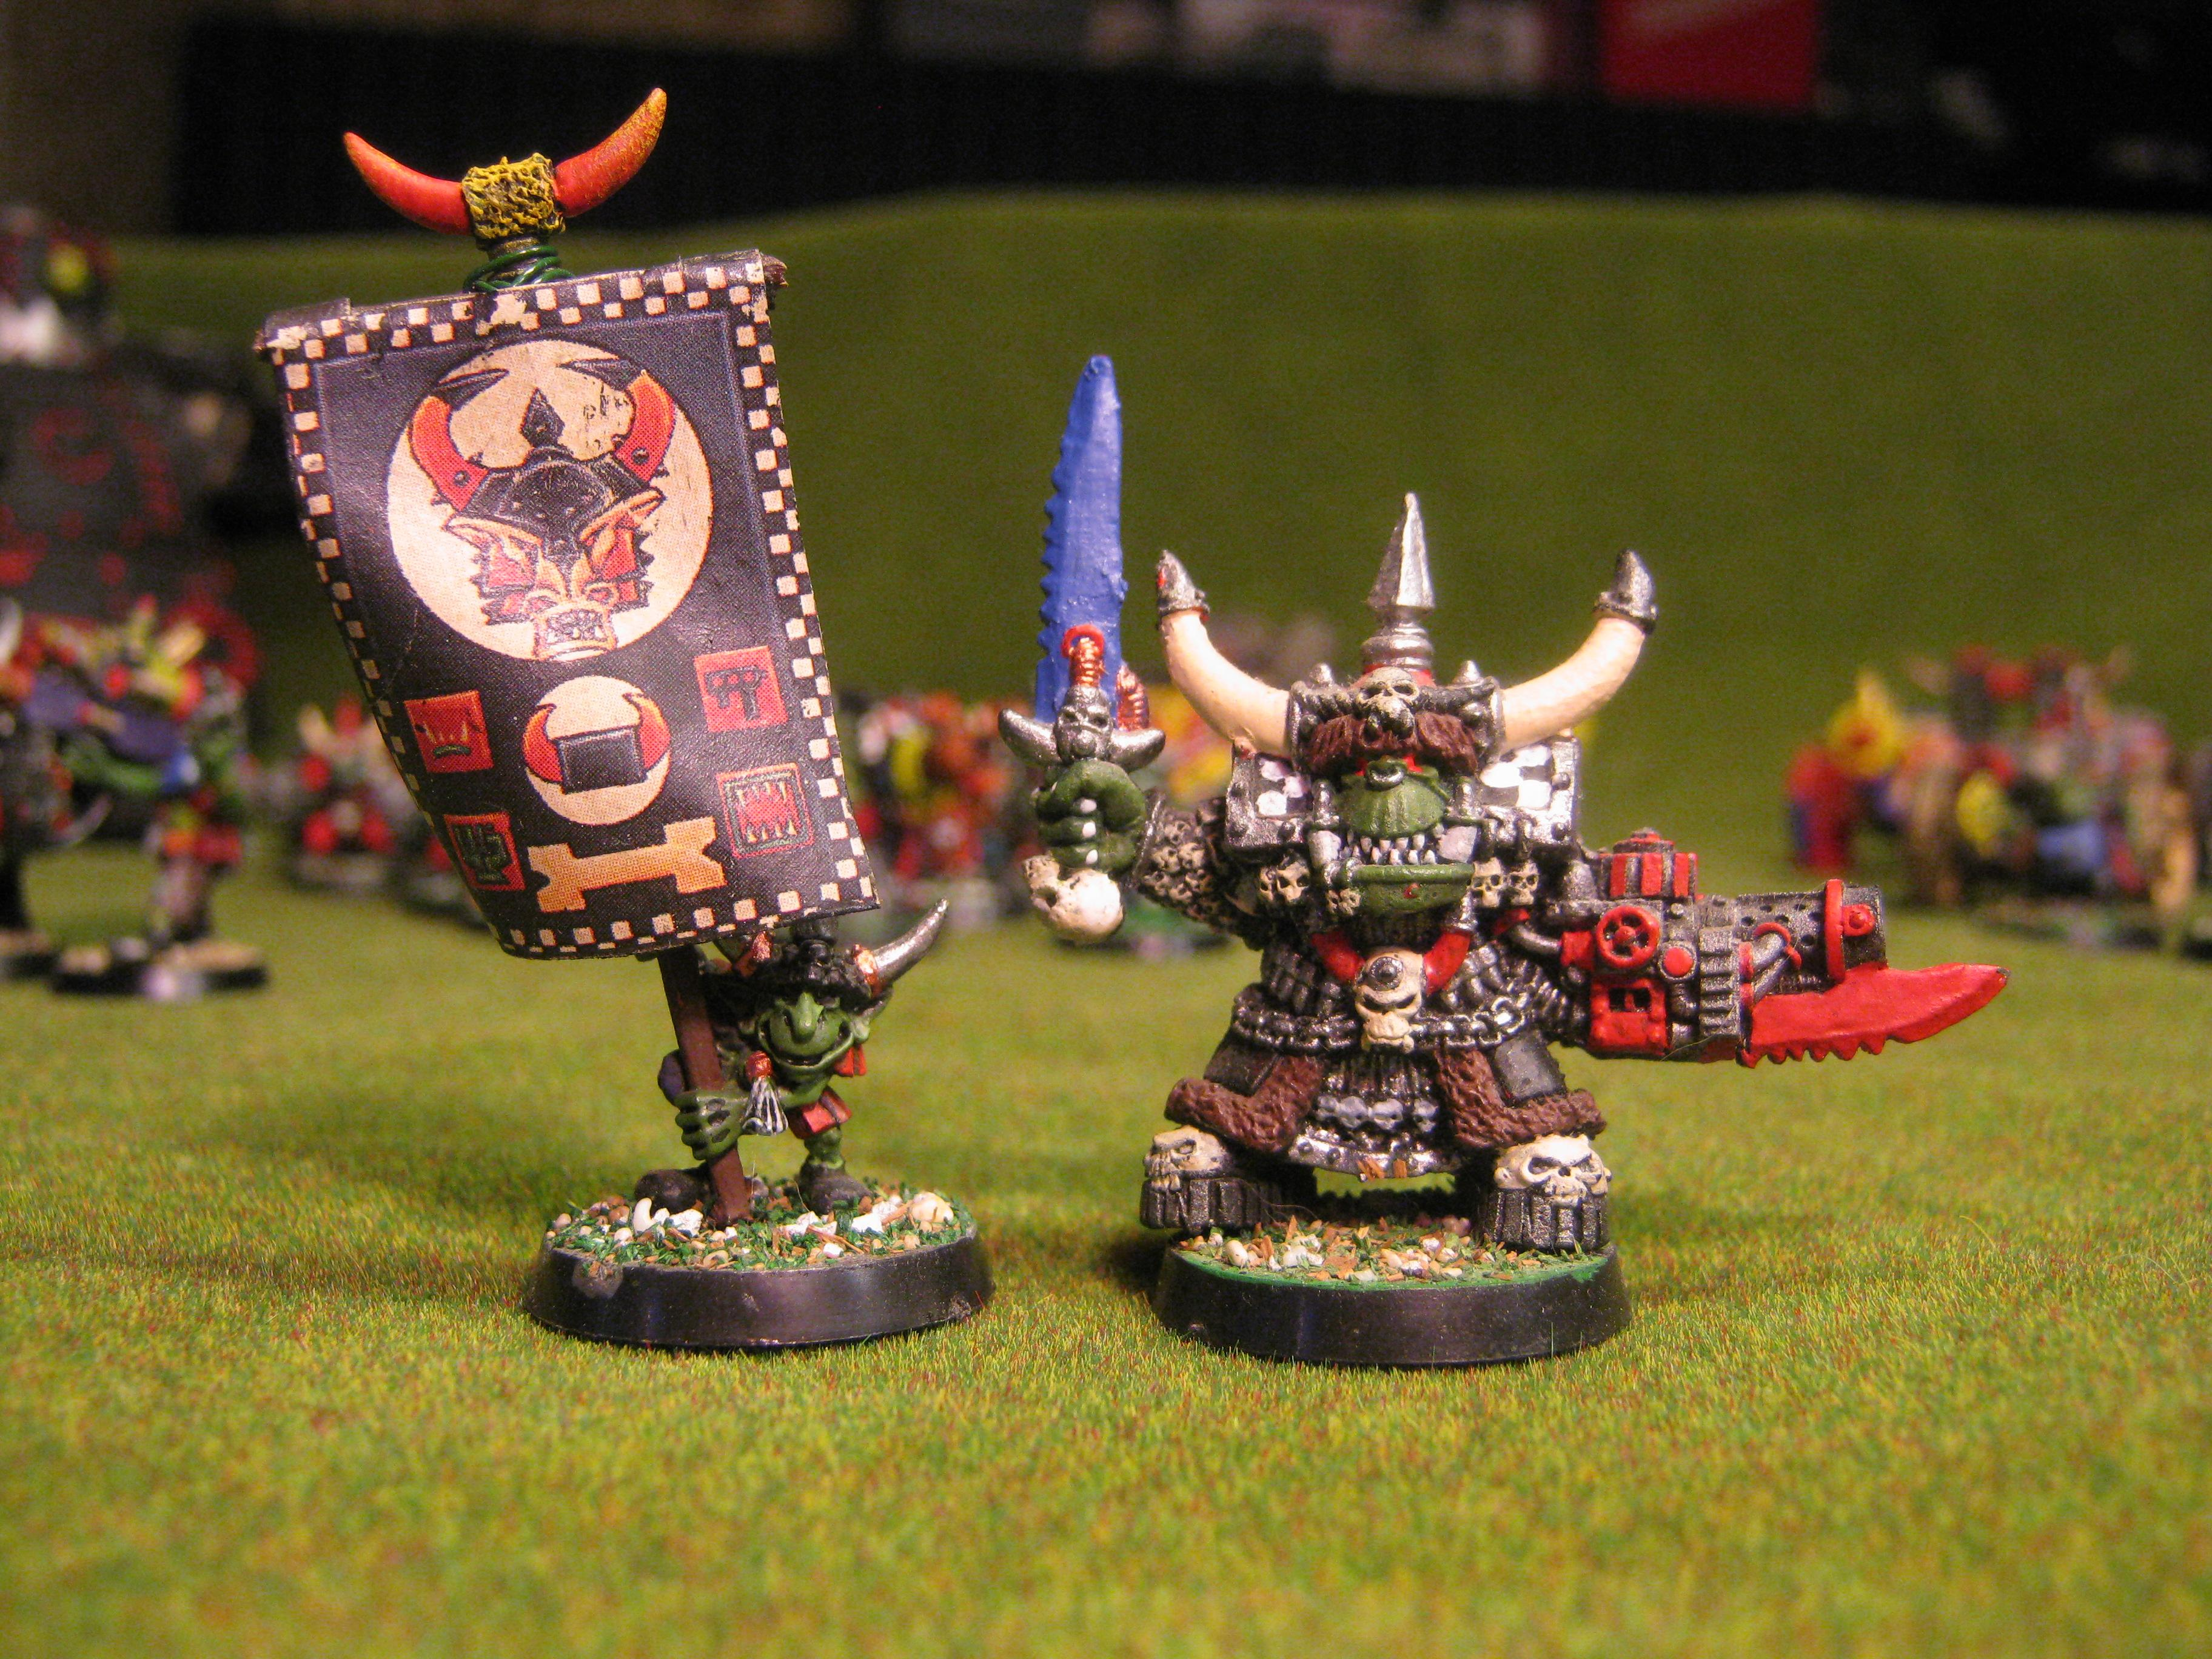 Goffs, Orks, Some boss and his grot